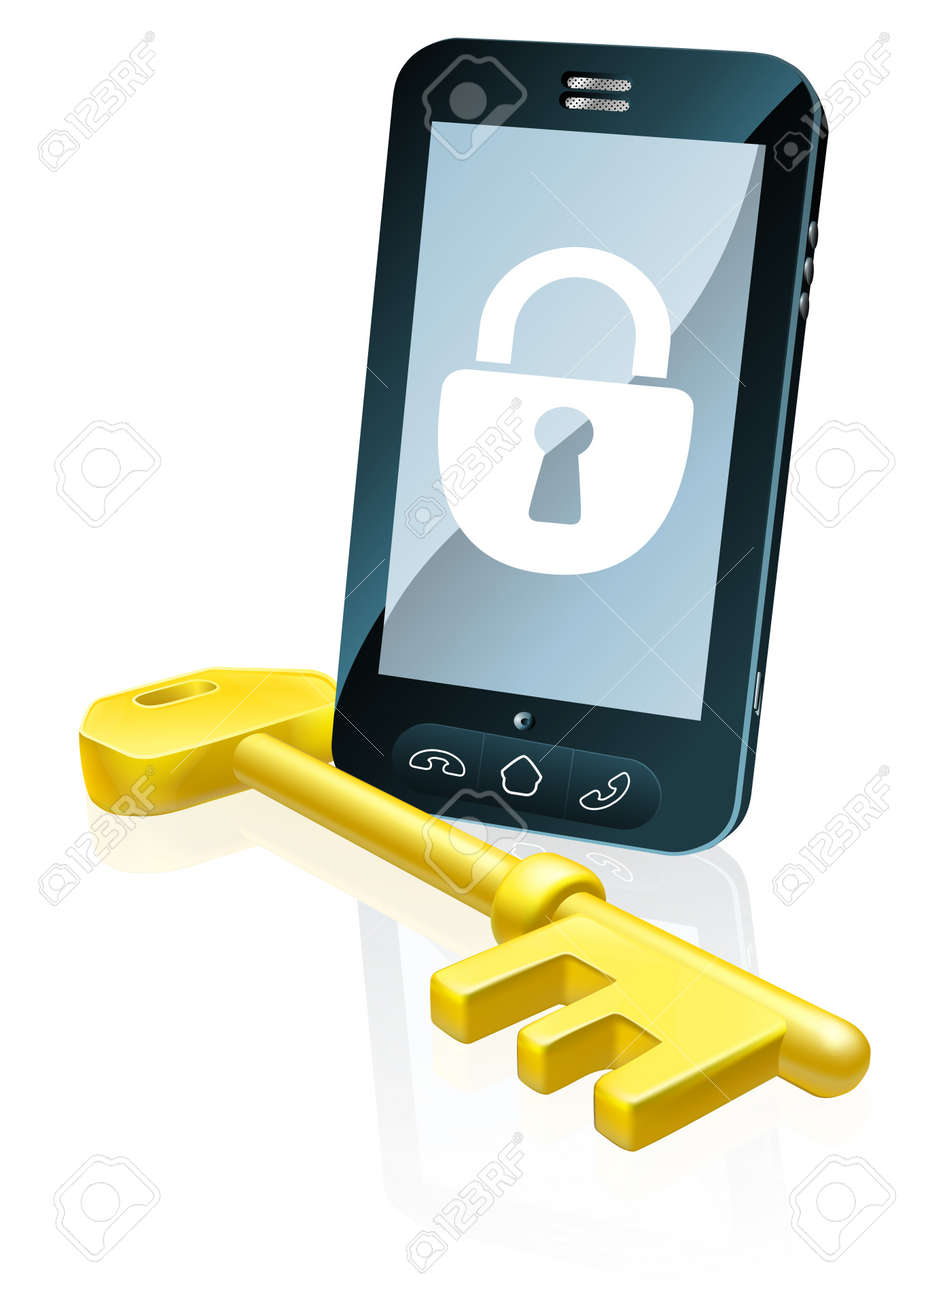 A mobile phone security concept. Mobile phone with gold key and padlock lock icon on the screen Stock Vector - 16874428